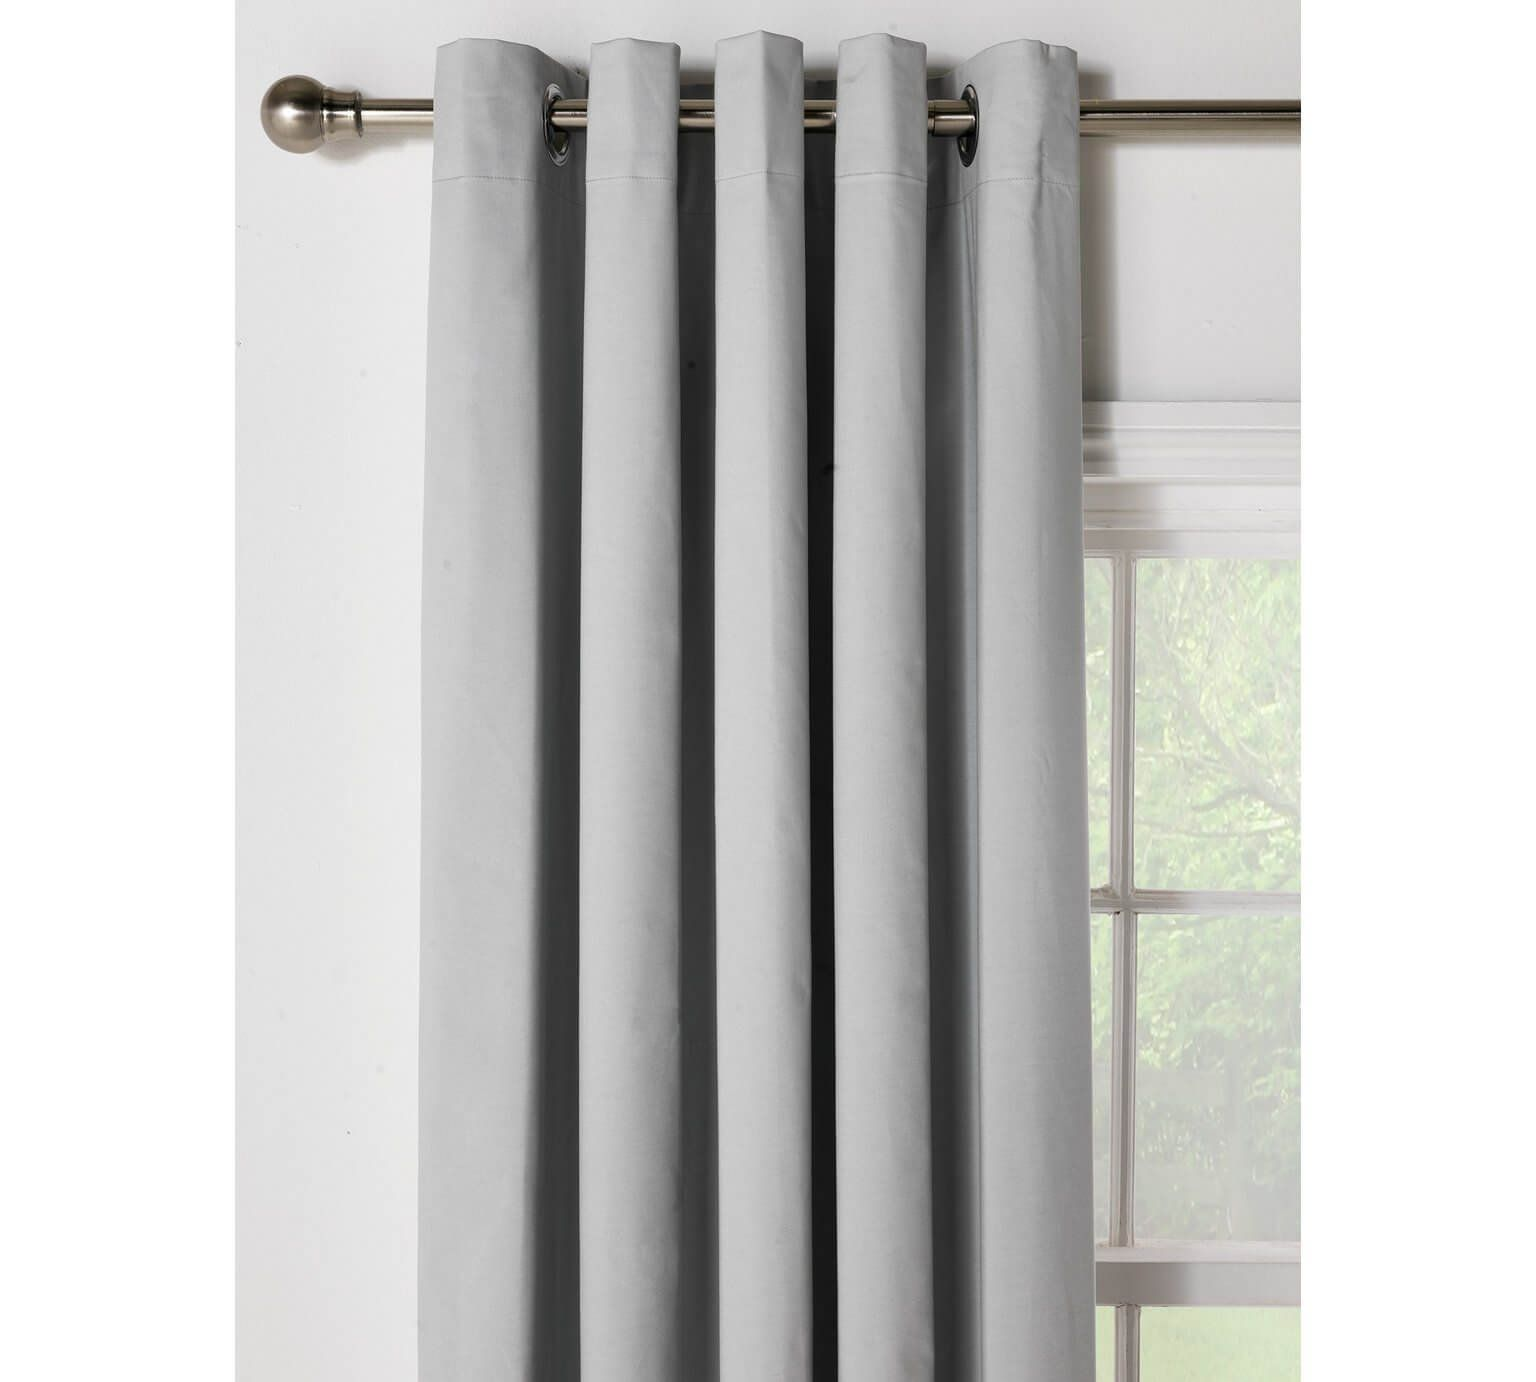 Buy home blackout thermal curtains xcm dove grey at argos